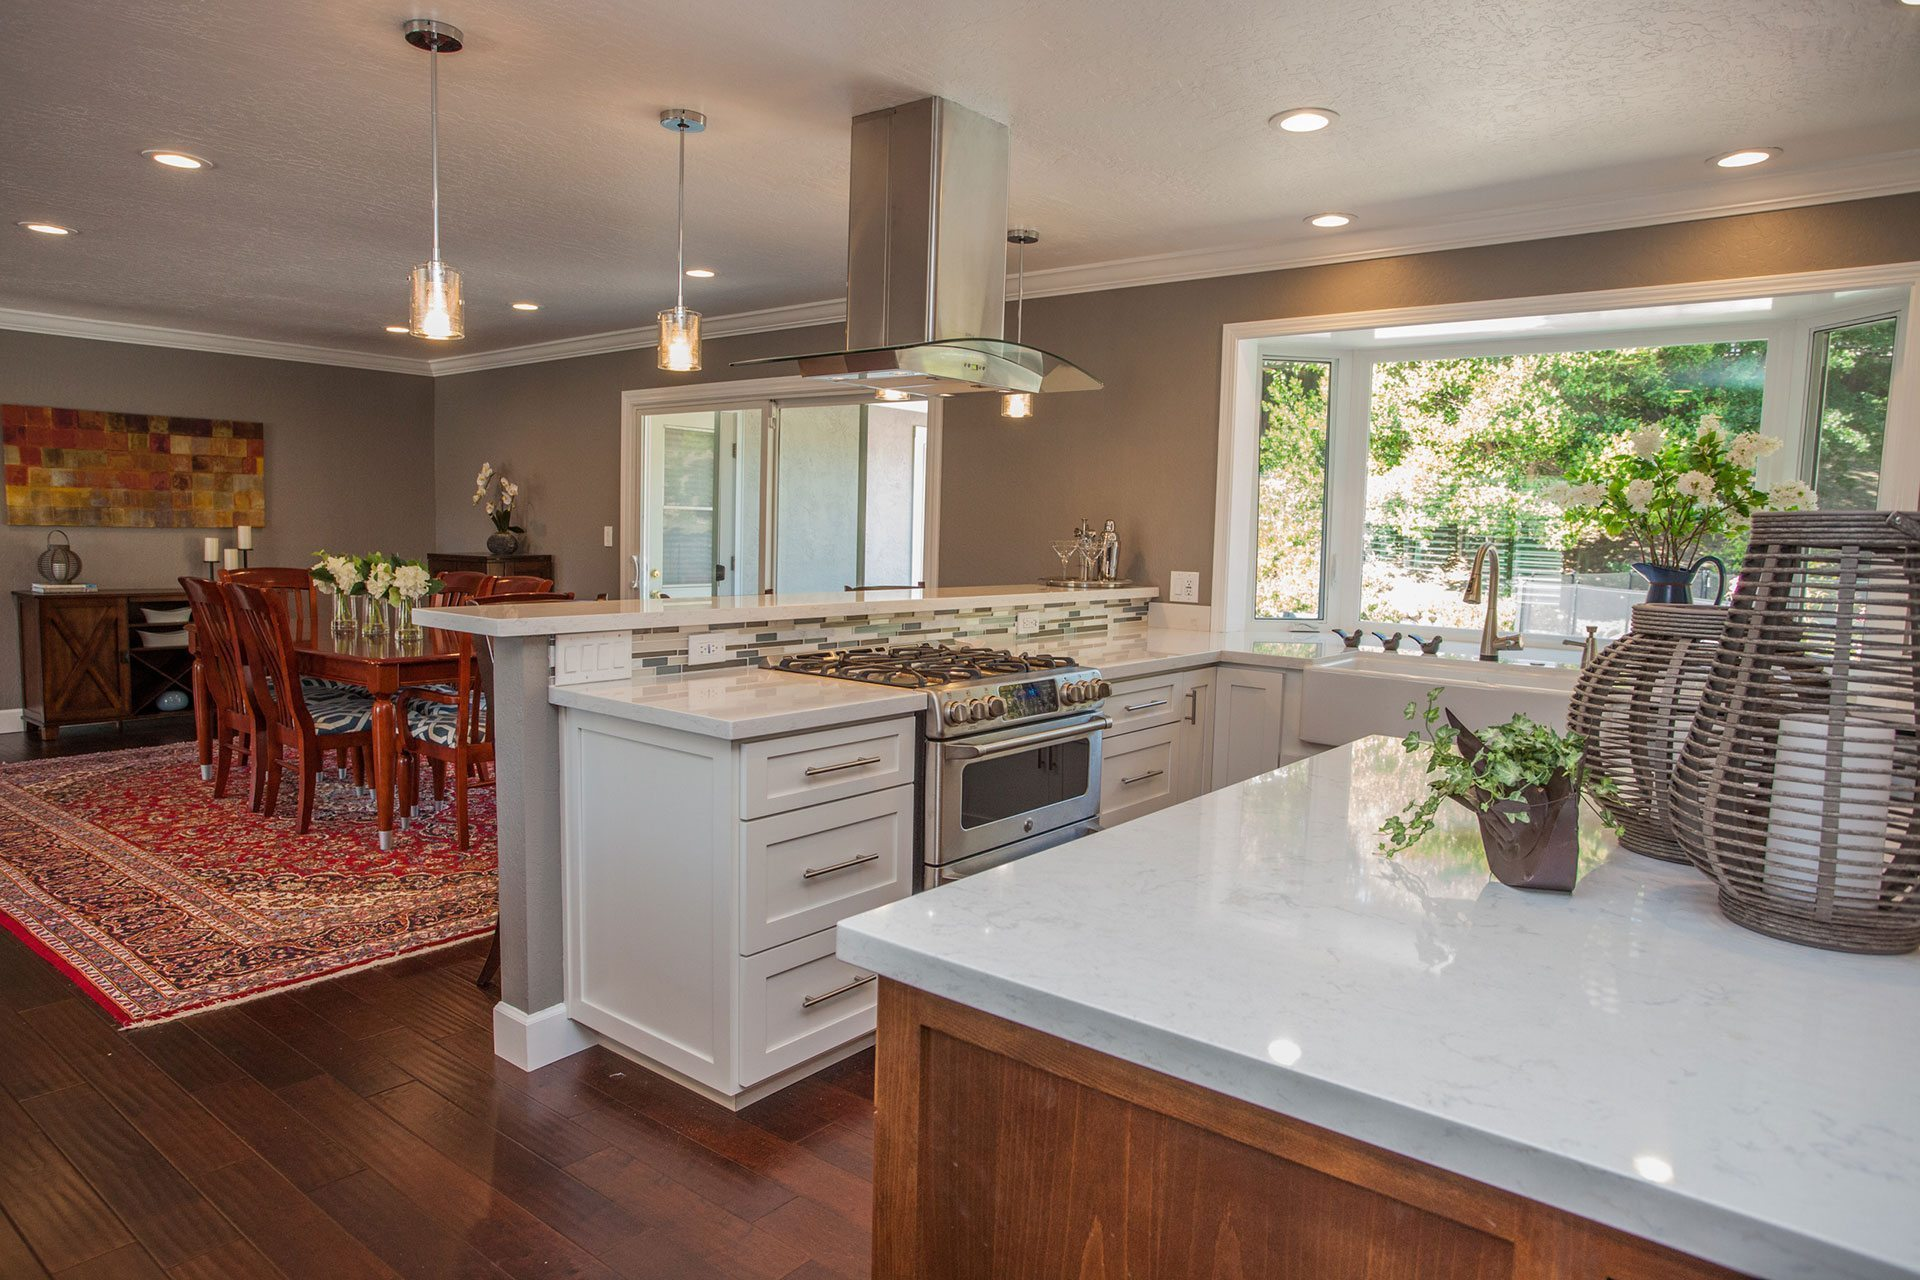 New Kitchen Trends for 2018 vs Design That s Here to Stay